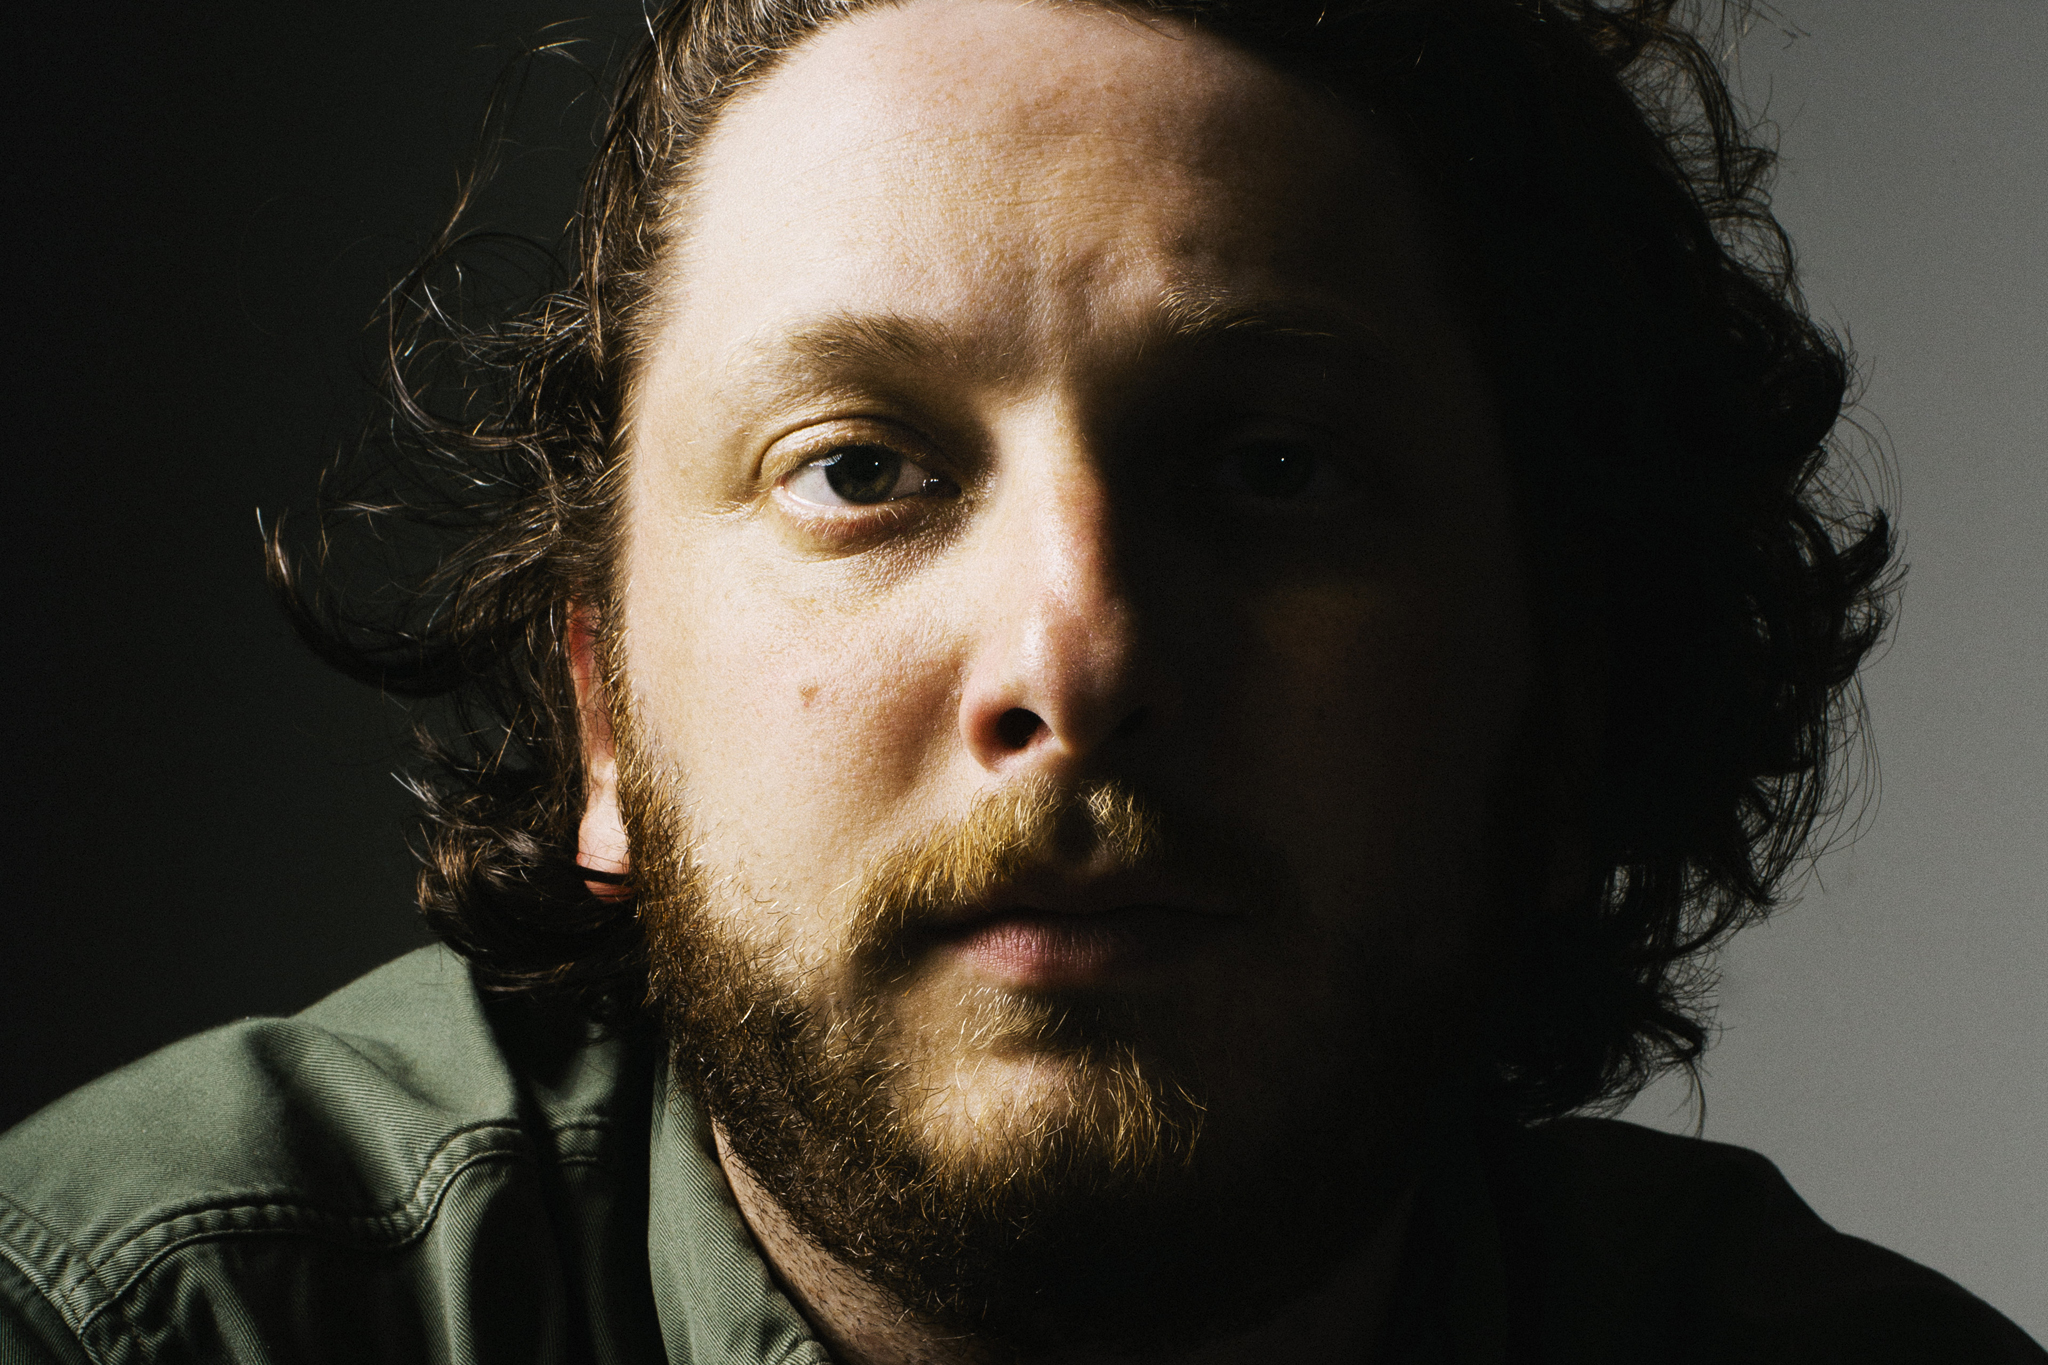 Oneohtrix Point Never + Liturgy